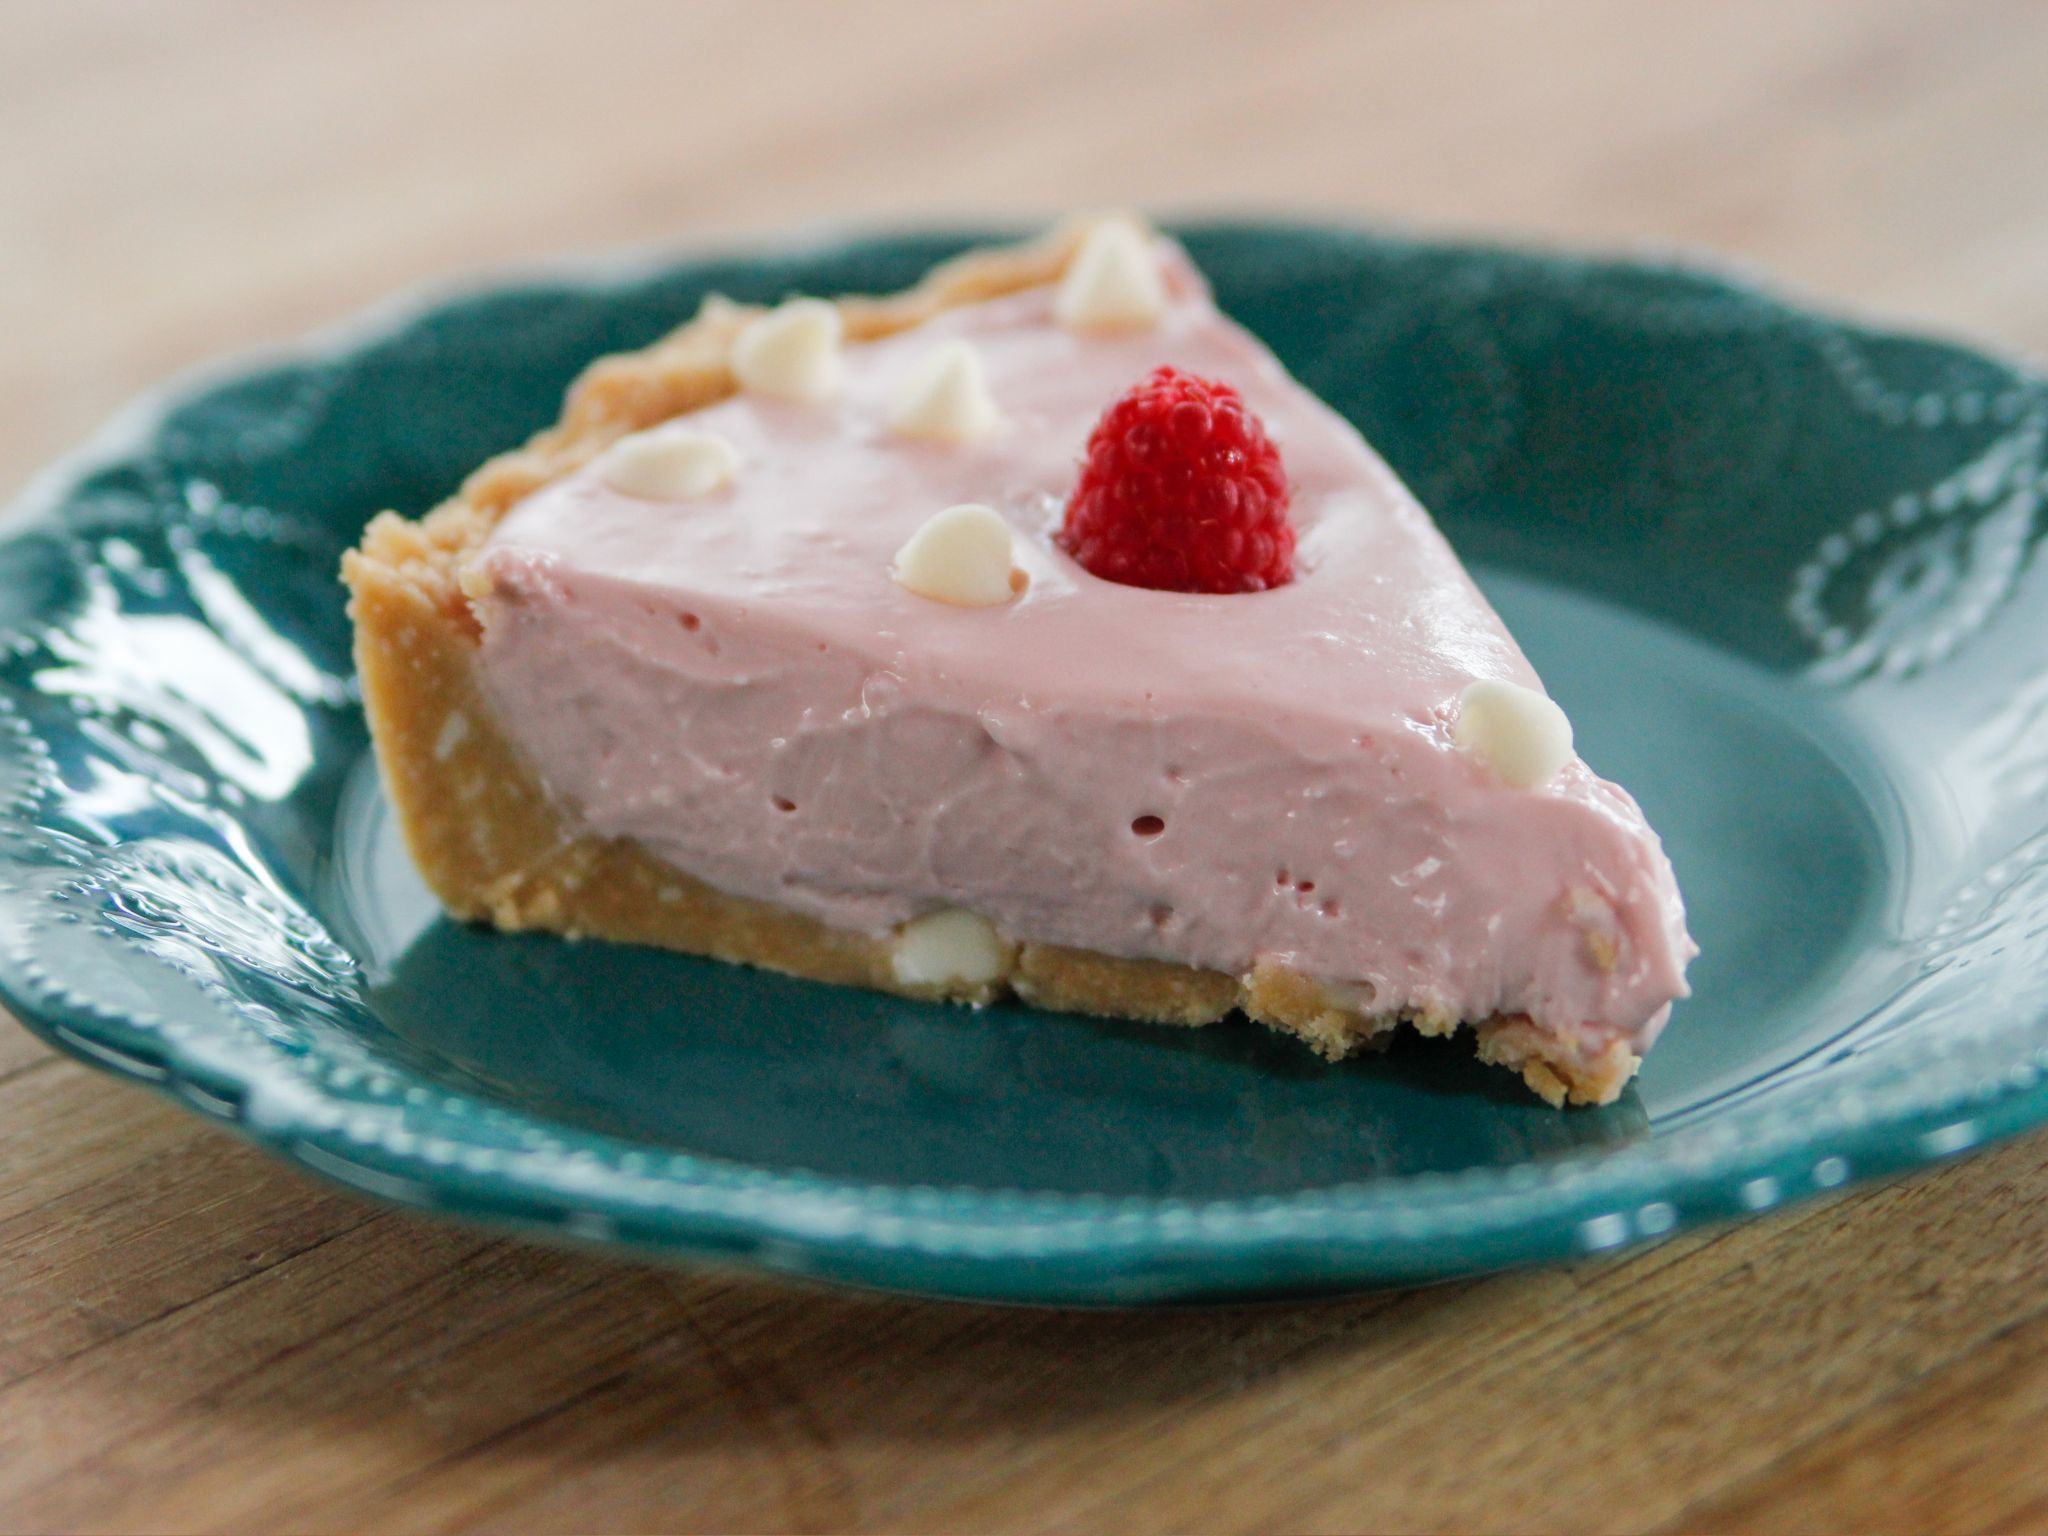 White chocolate raspberry cheesecake recipe white chocolate white chocolate raspberry cheesecake recipe white chocolate raspberry cheesecake chocolate raspberry cheesecake and white chocolate forumfinder Image collections